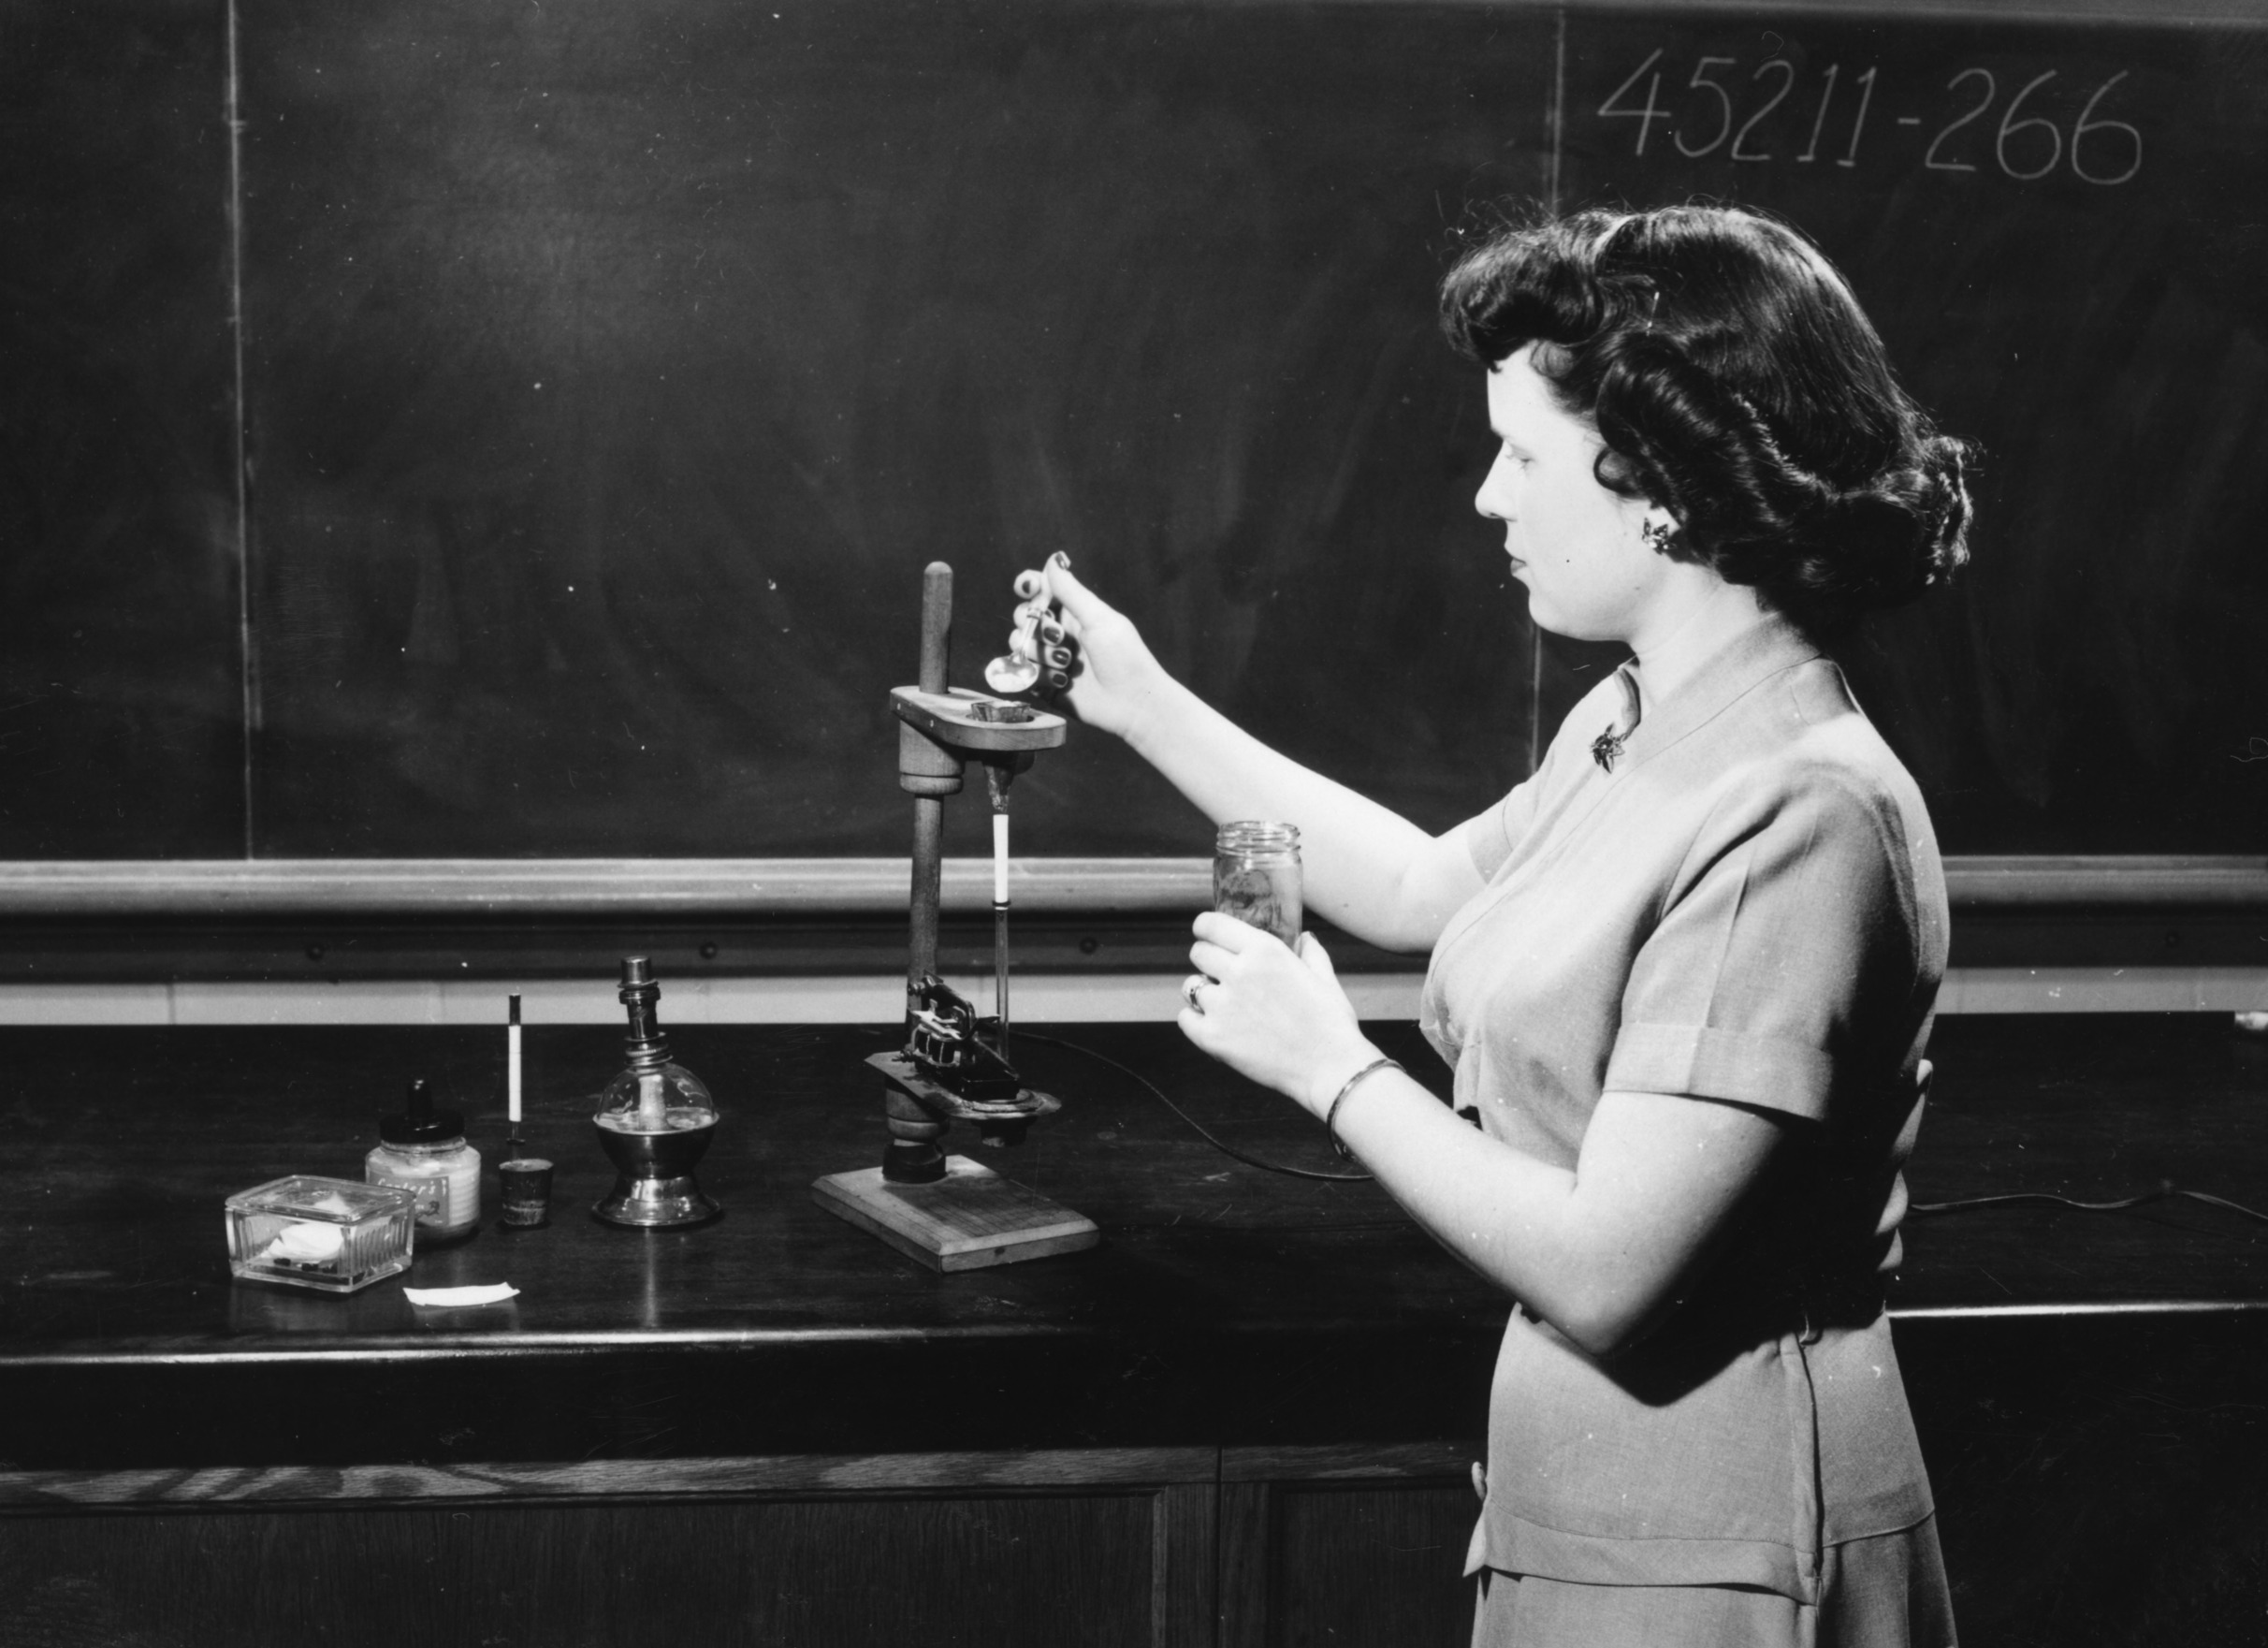 Unidentified woman in a tobacco lab